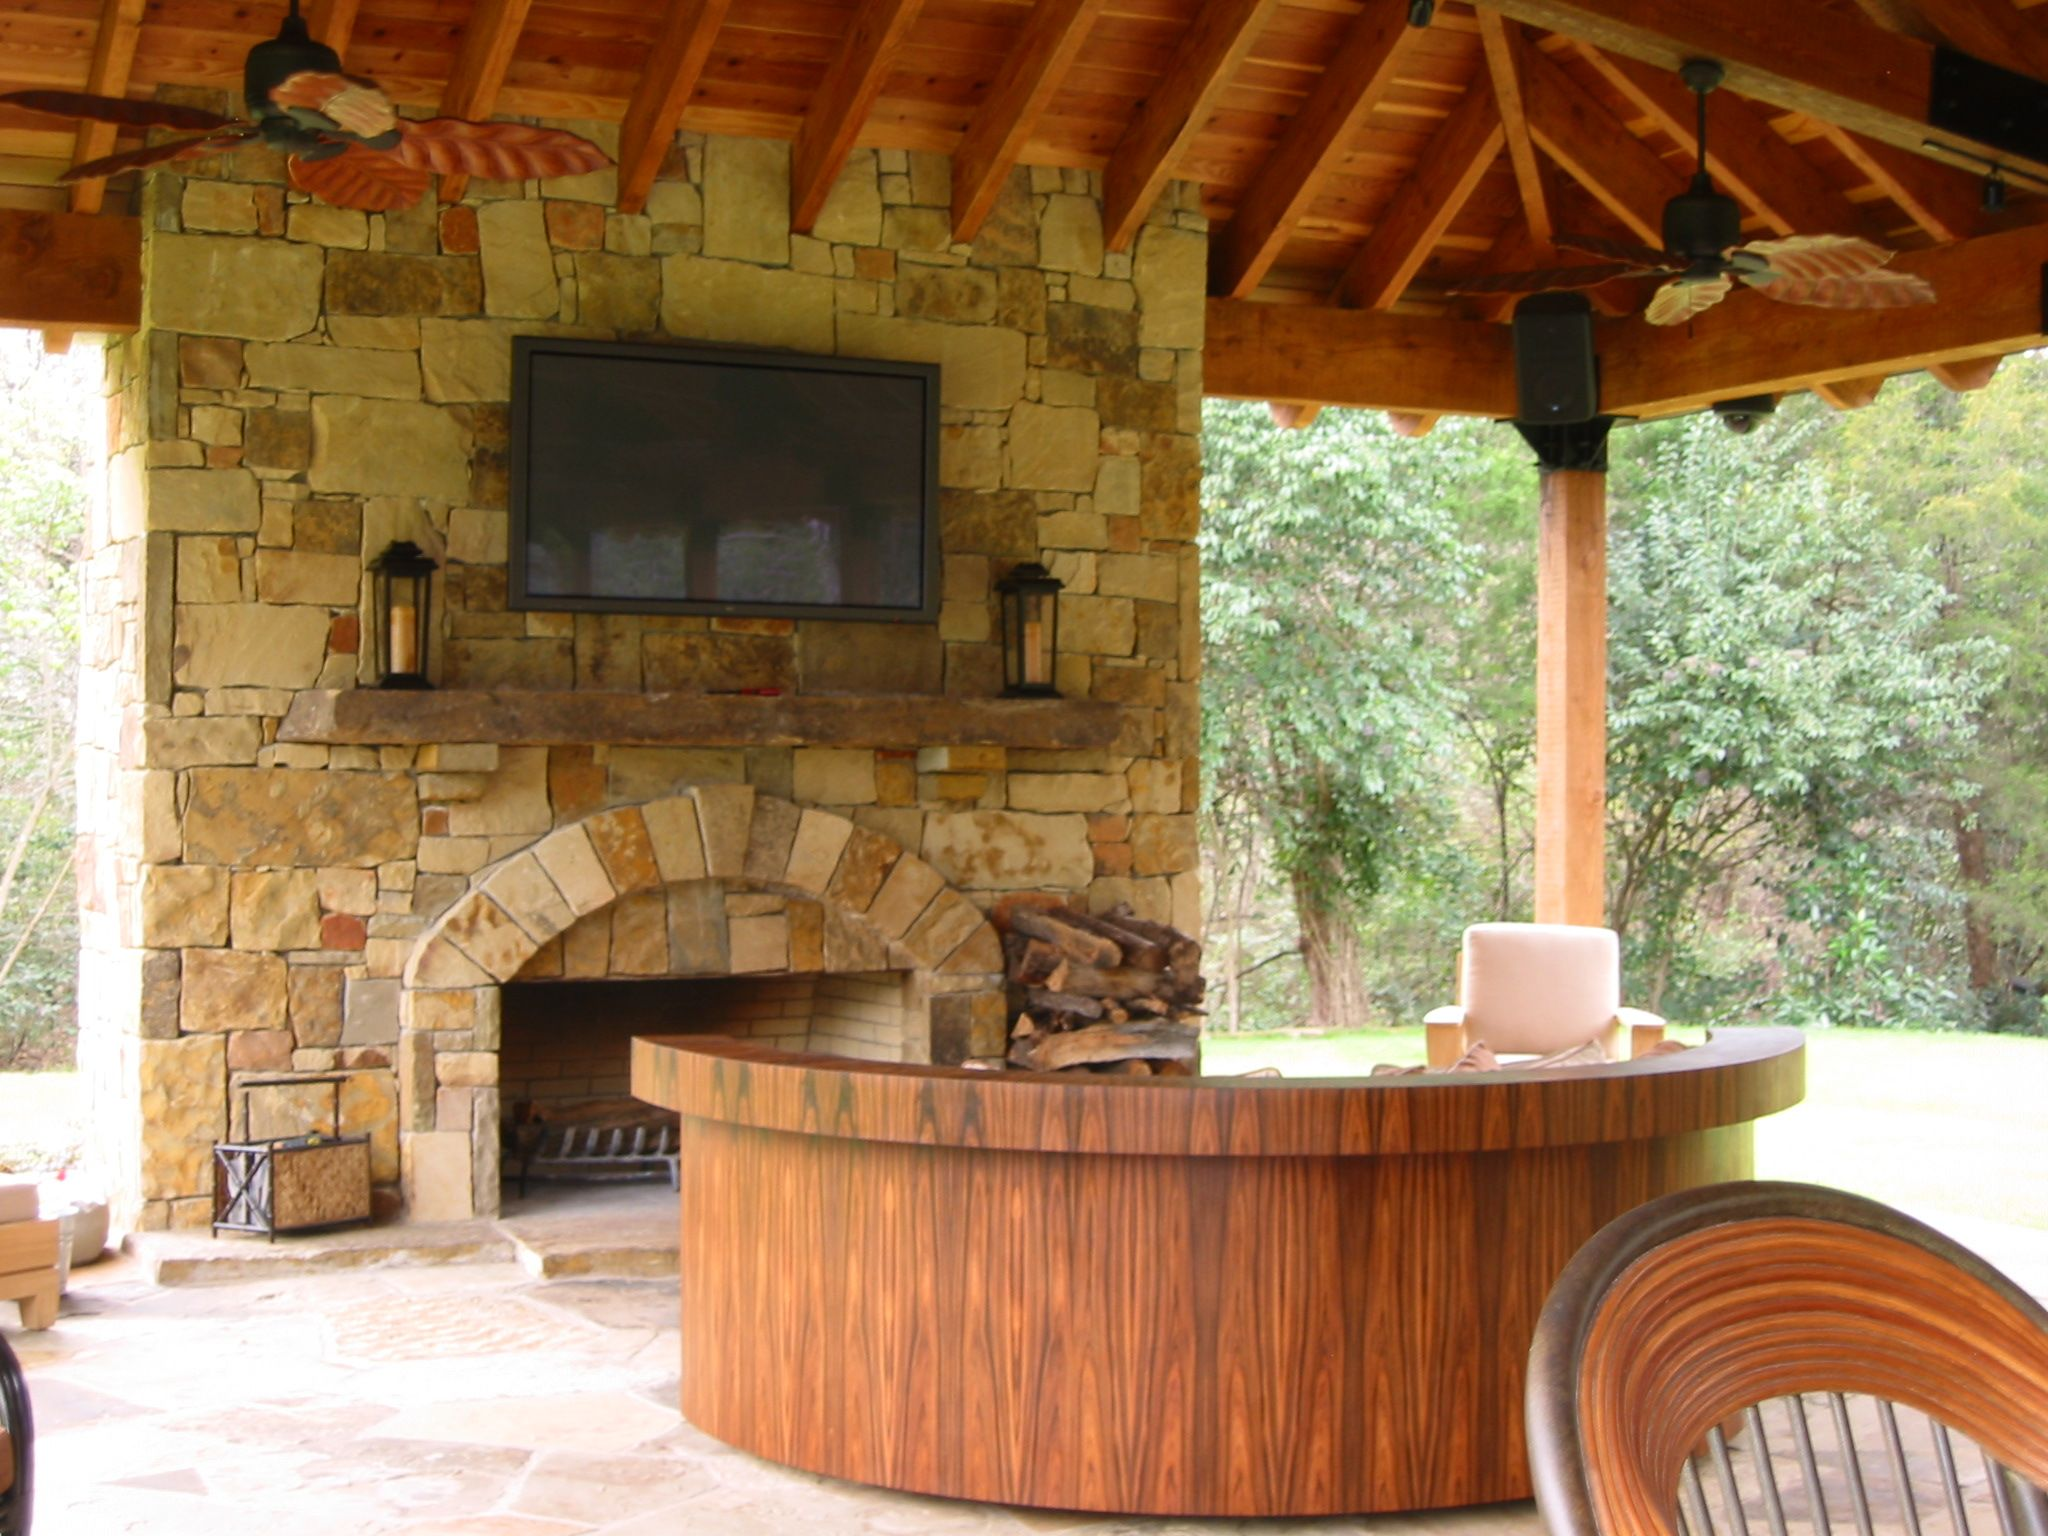 Texas Regional styled outdoor stone hearth fireplace with ... on Rock And Stone Outdoor Living id=29769